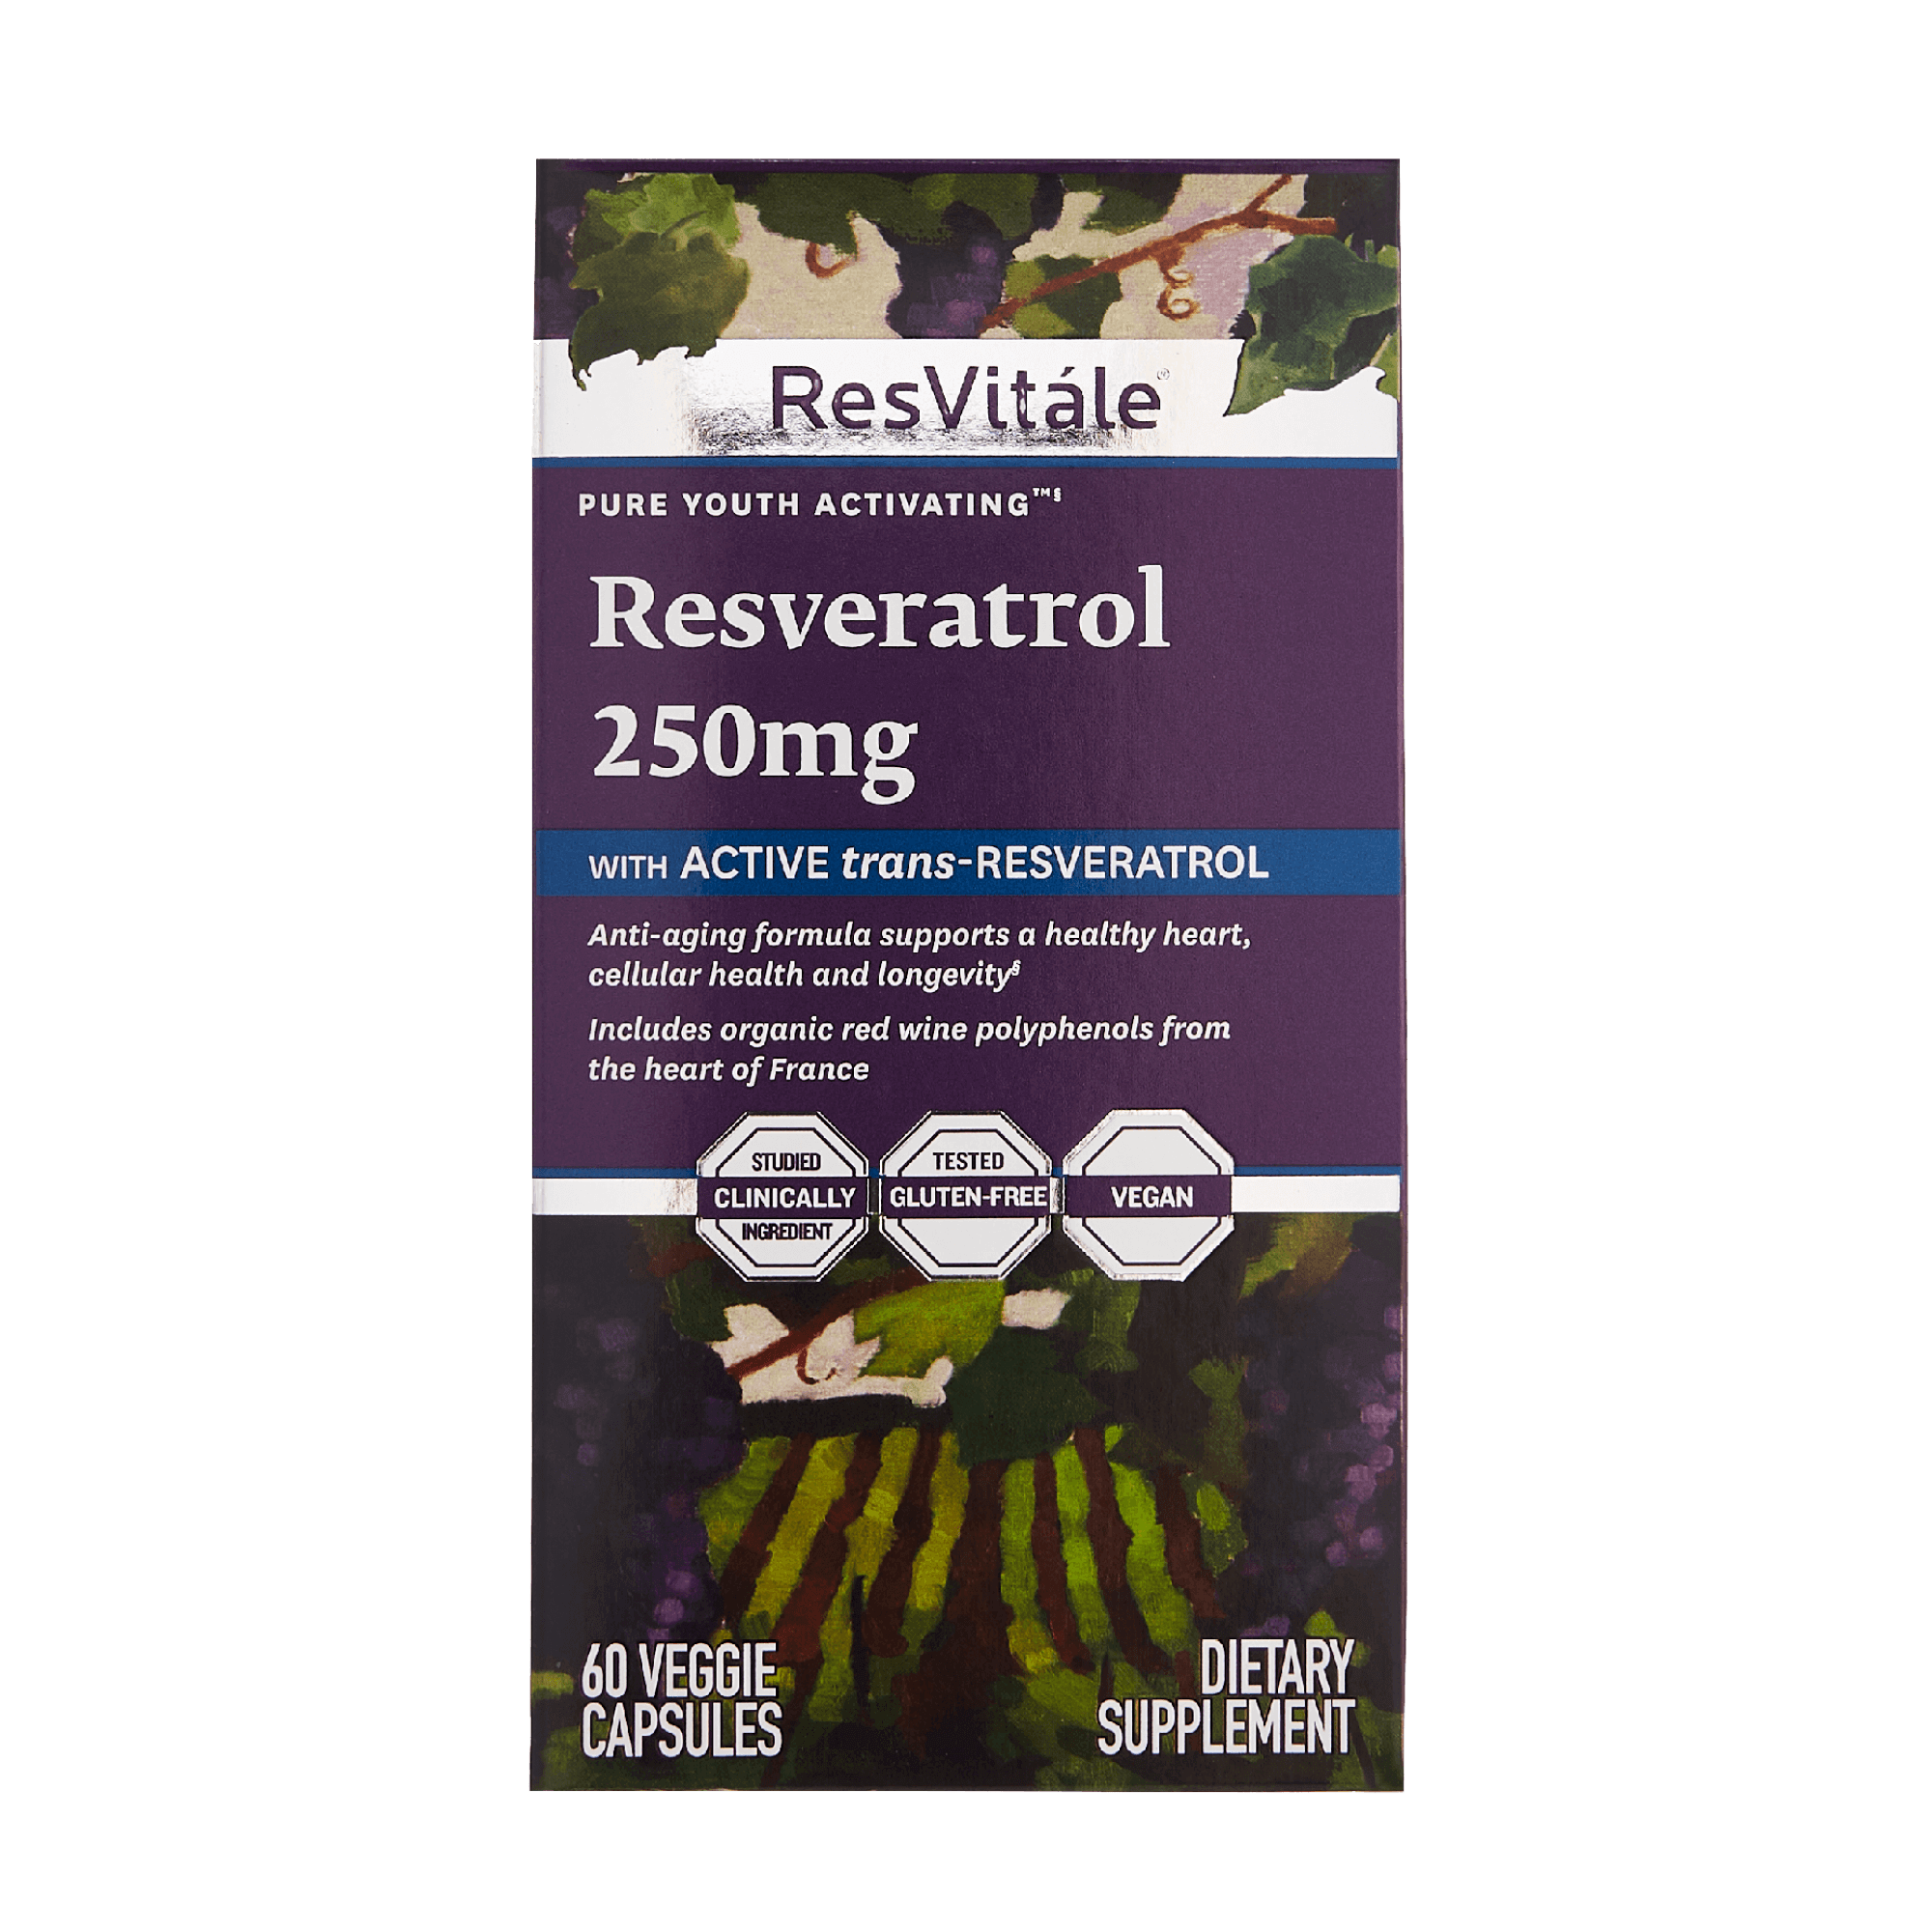 ResVitale, Resveratrol 250mg, Active trans-resveratrol, anti-aging formula, supports healthy heart, cellular health, longevity, red wine polyphenols from France, gluten-free, vegan, 60 capsules